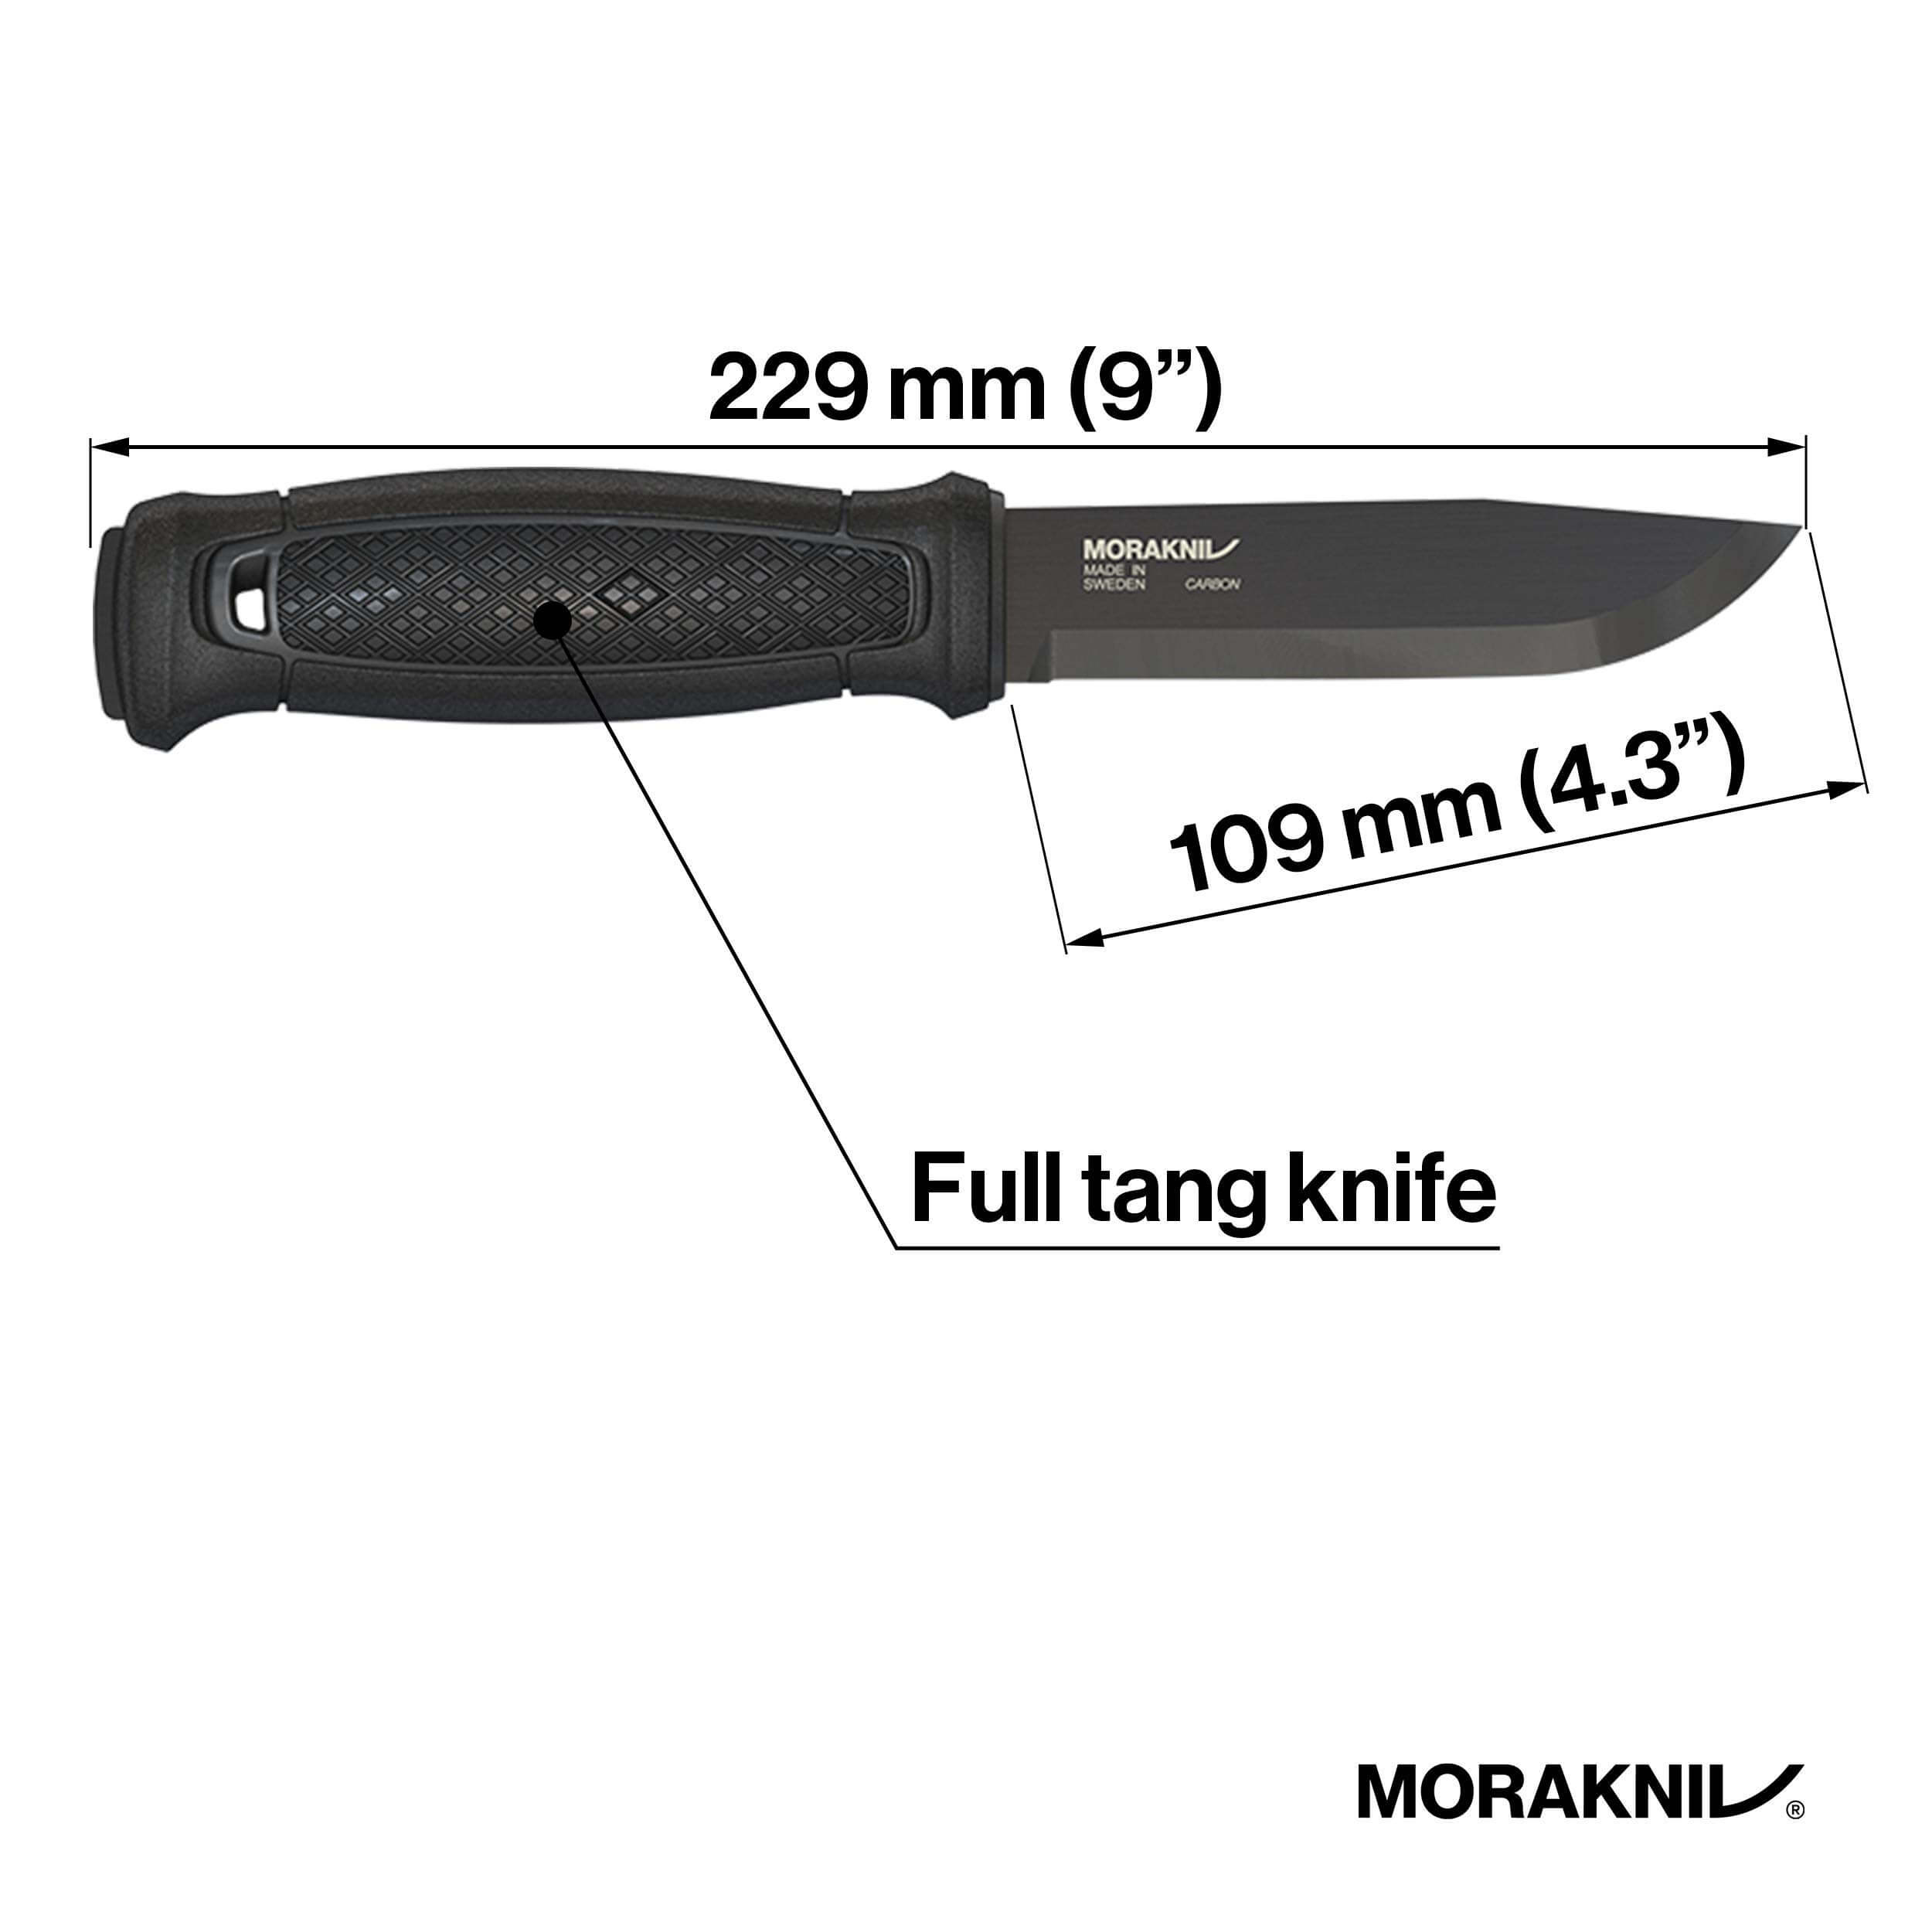 Morakniv Garberg Full Tang Fixed Blade Knife, bushcraft survival knife, best survival knives for the money,best fixed blade knives 2020